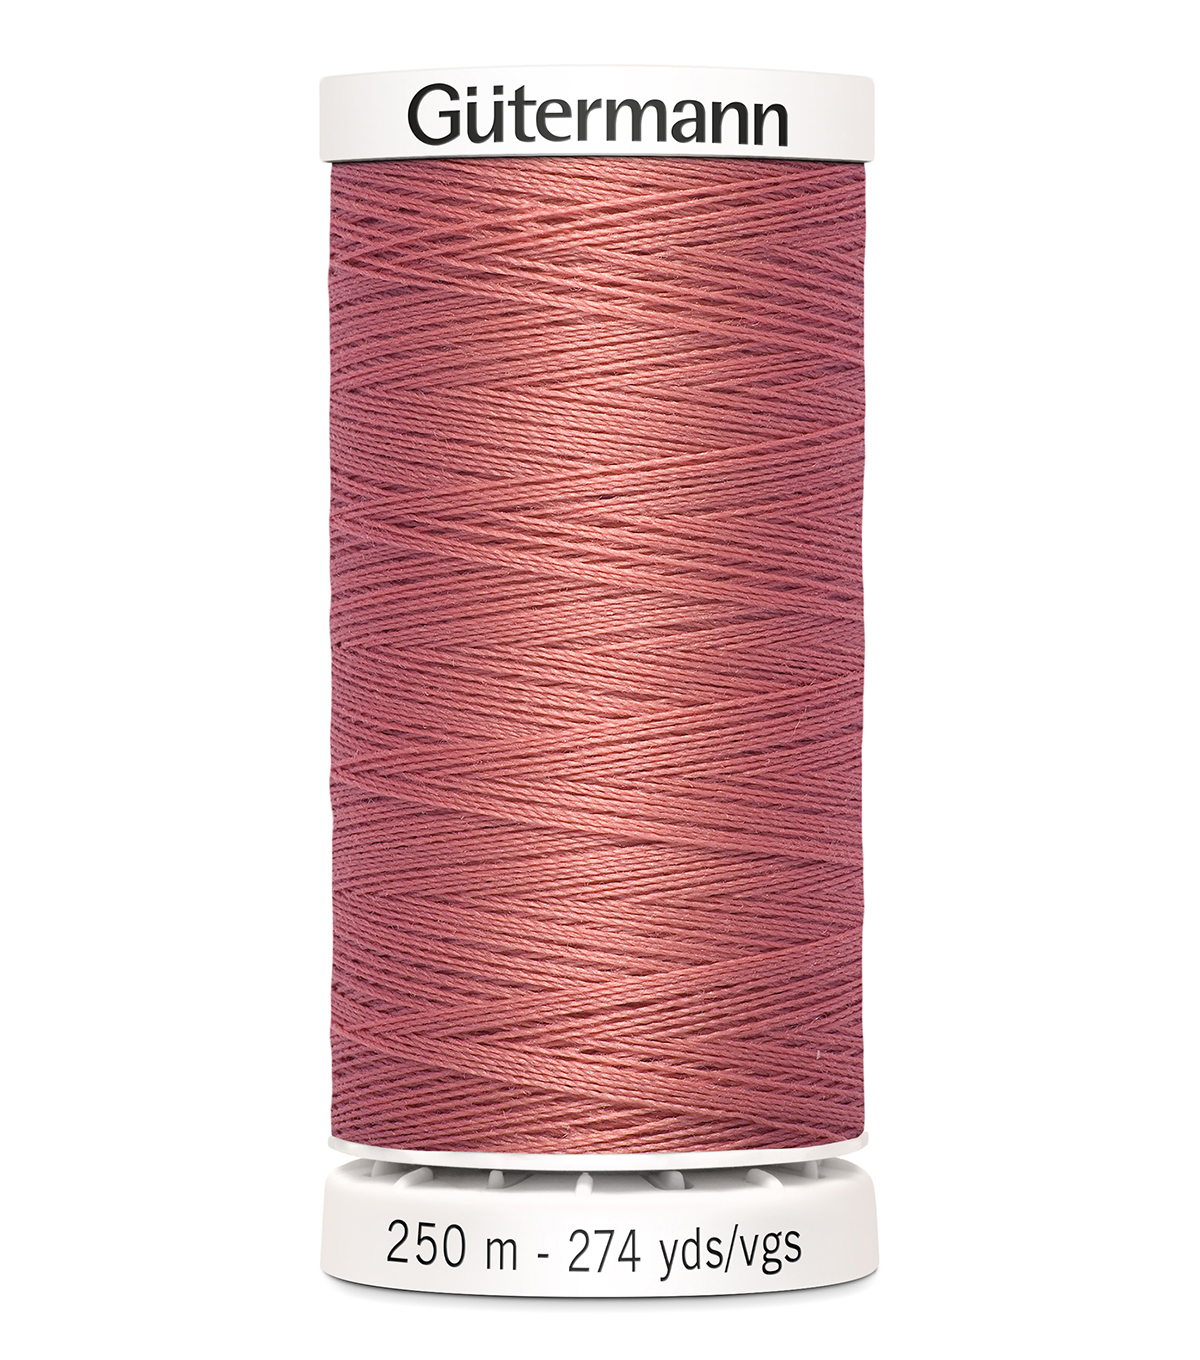 Gutermann Sew-All Thread 273 Yds-(300 & 900 series) Cool Tones , Coral Rose #352